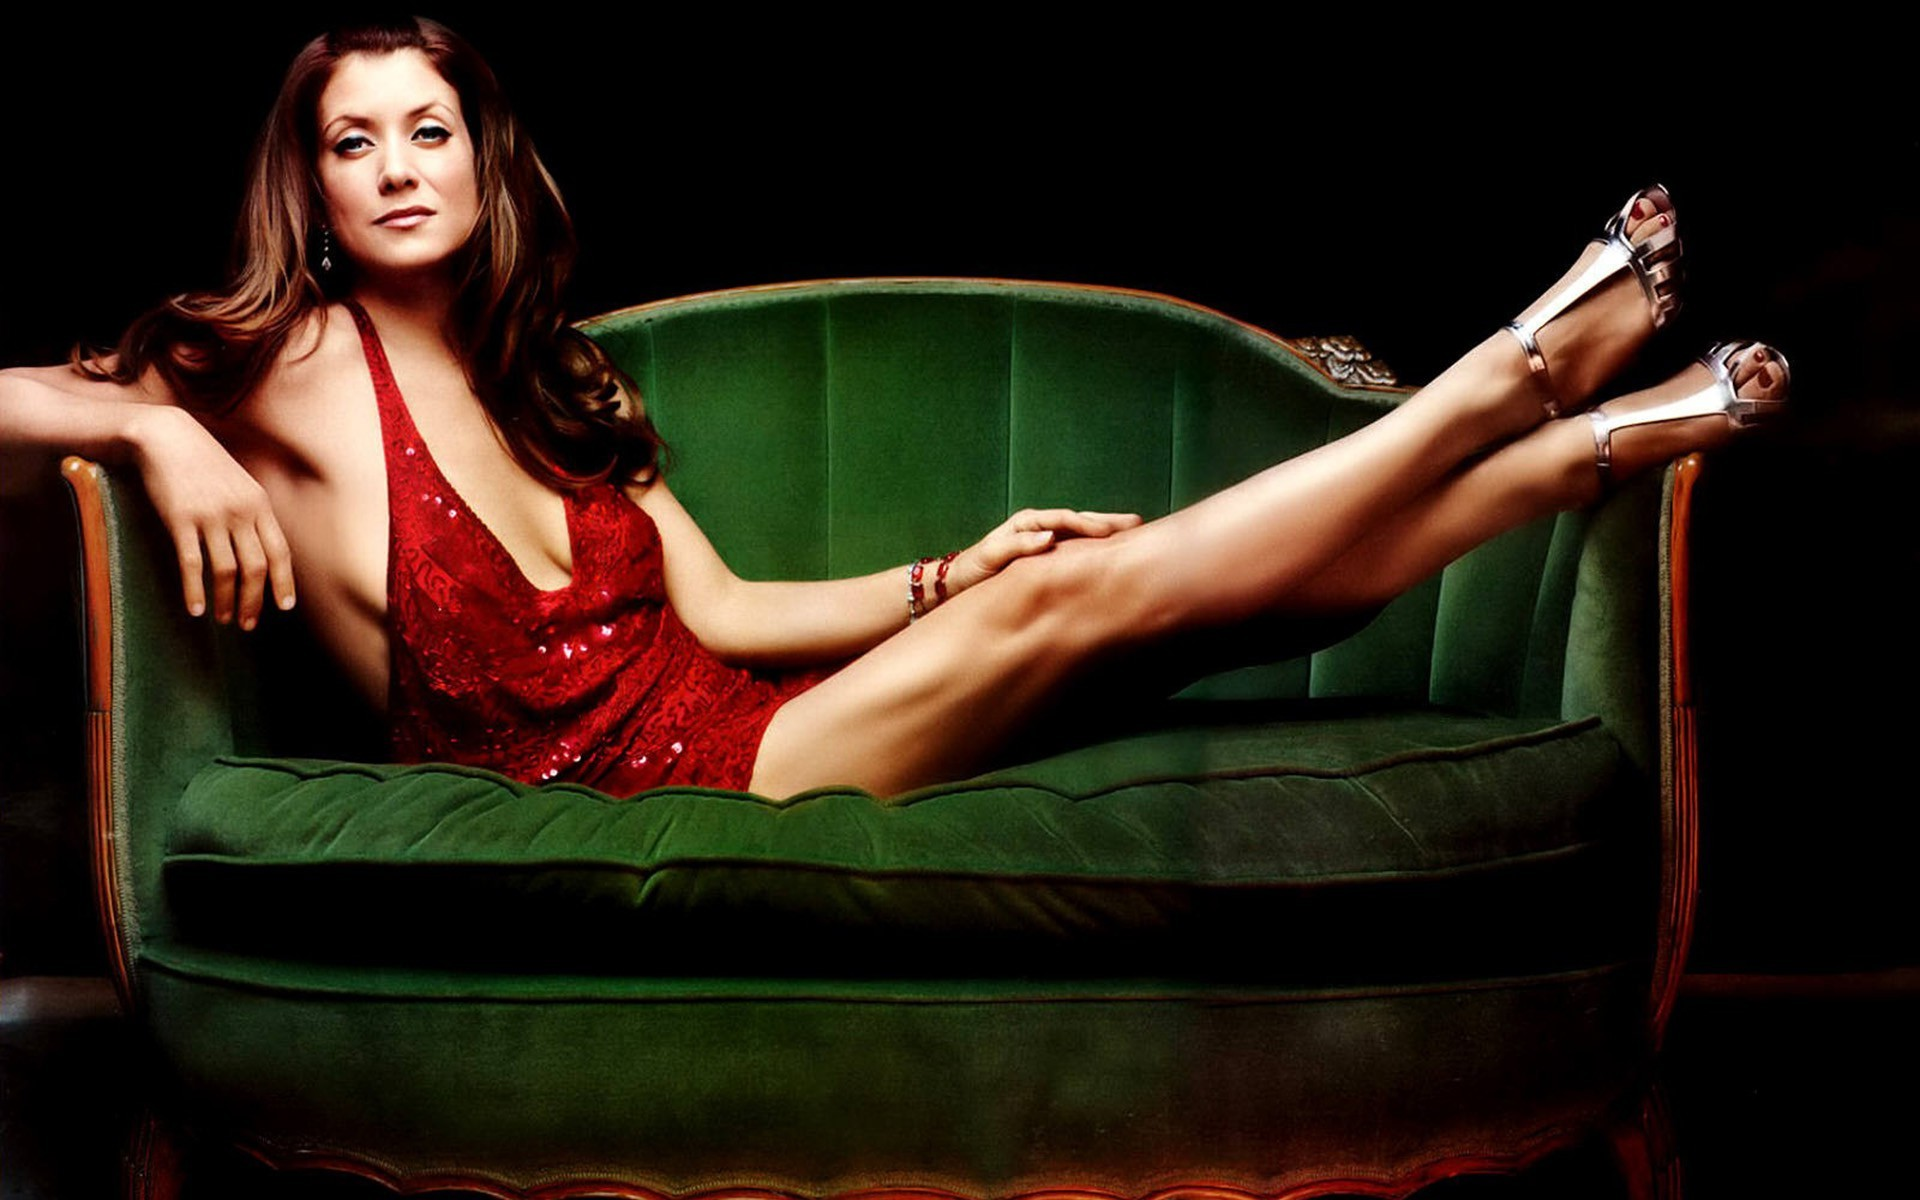 1920x1200 - Kate Walsh Wallpapers 24